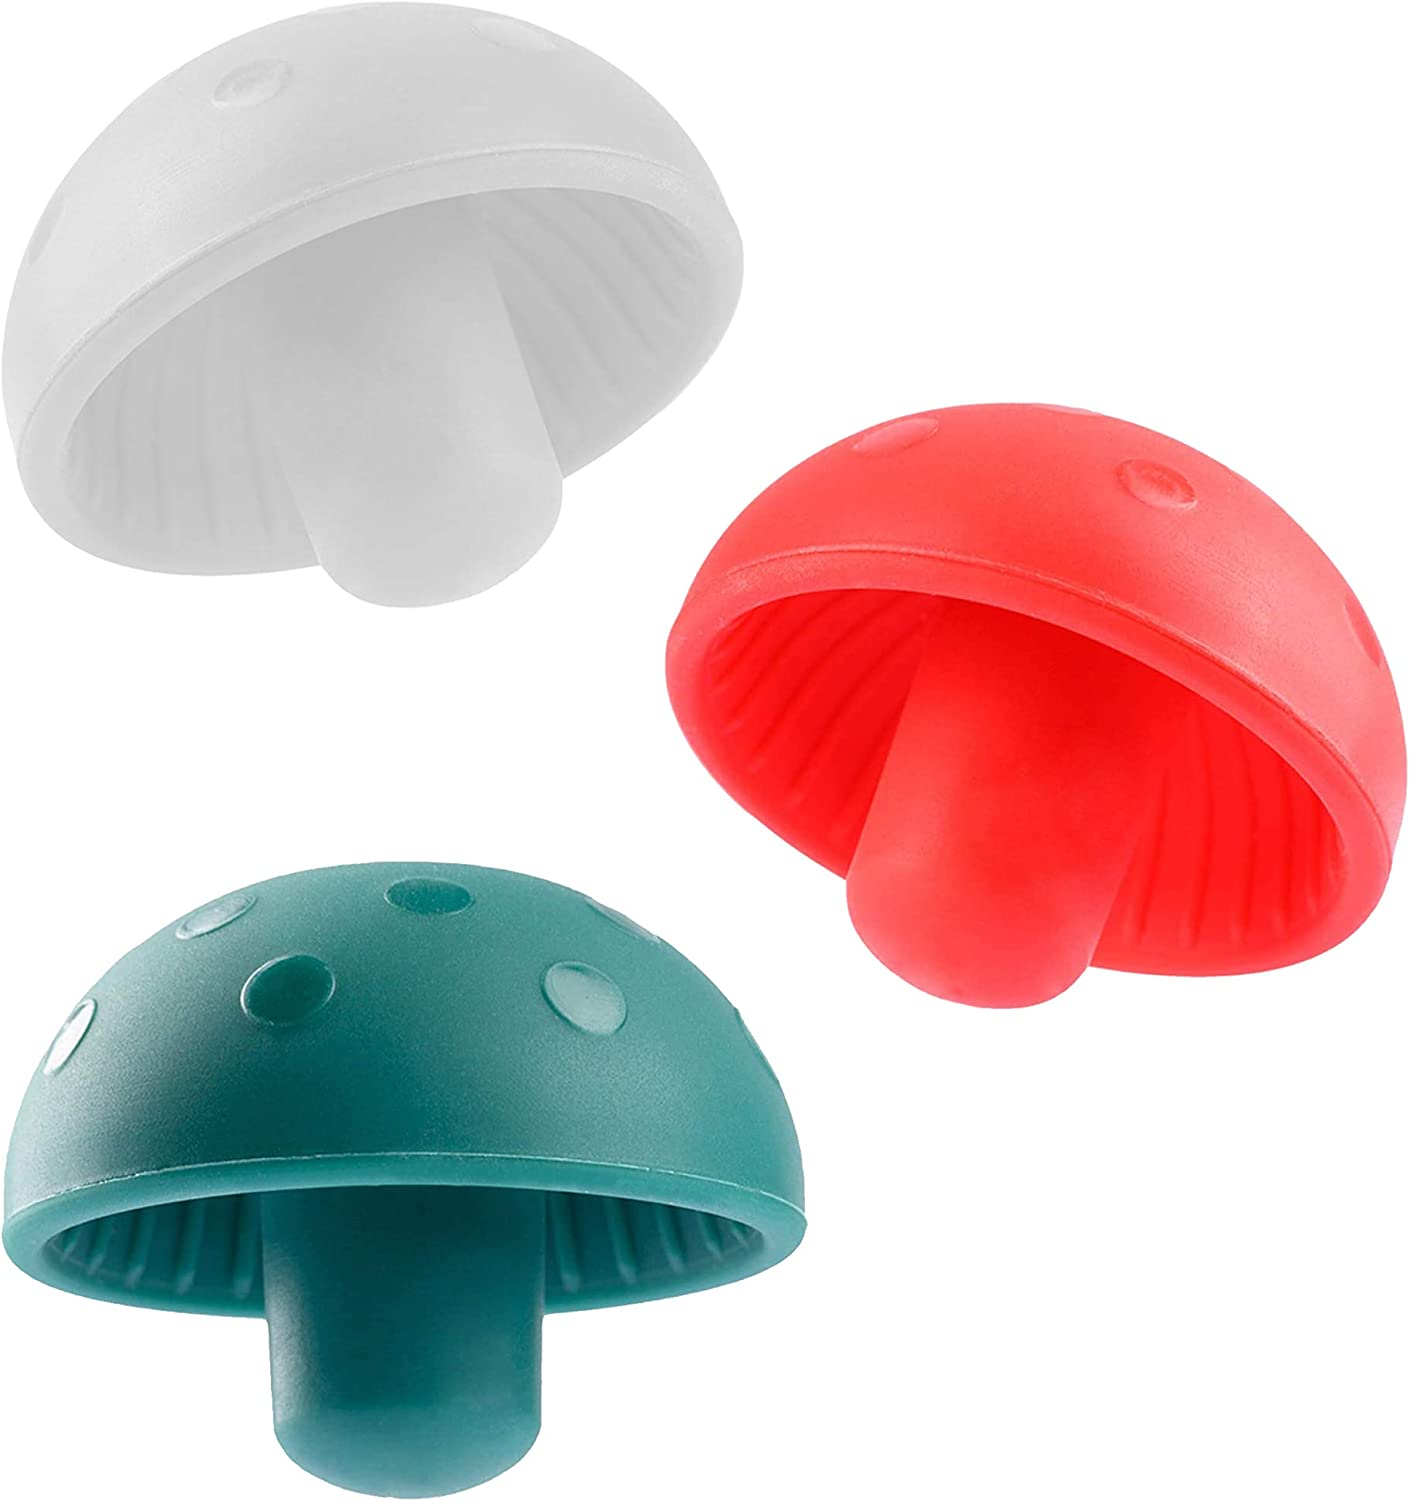 Selling and selling Mushroom Silicone Wine Stoppers Bottle Cover New product! New type Beer Reusable